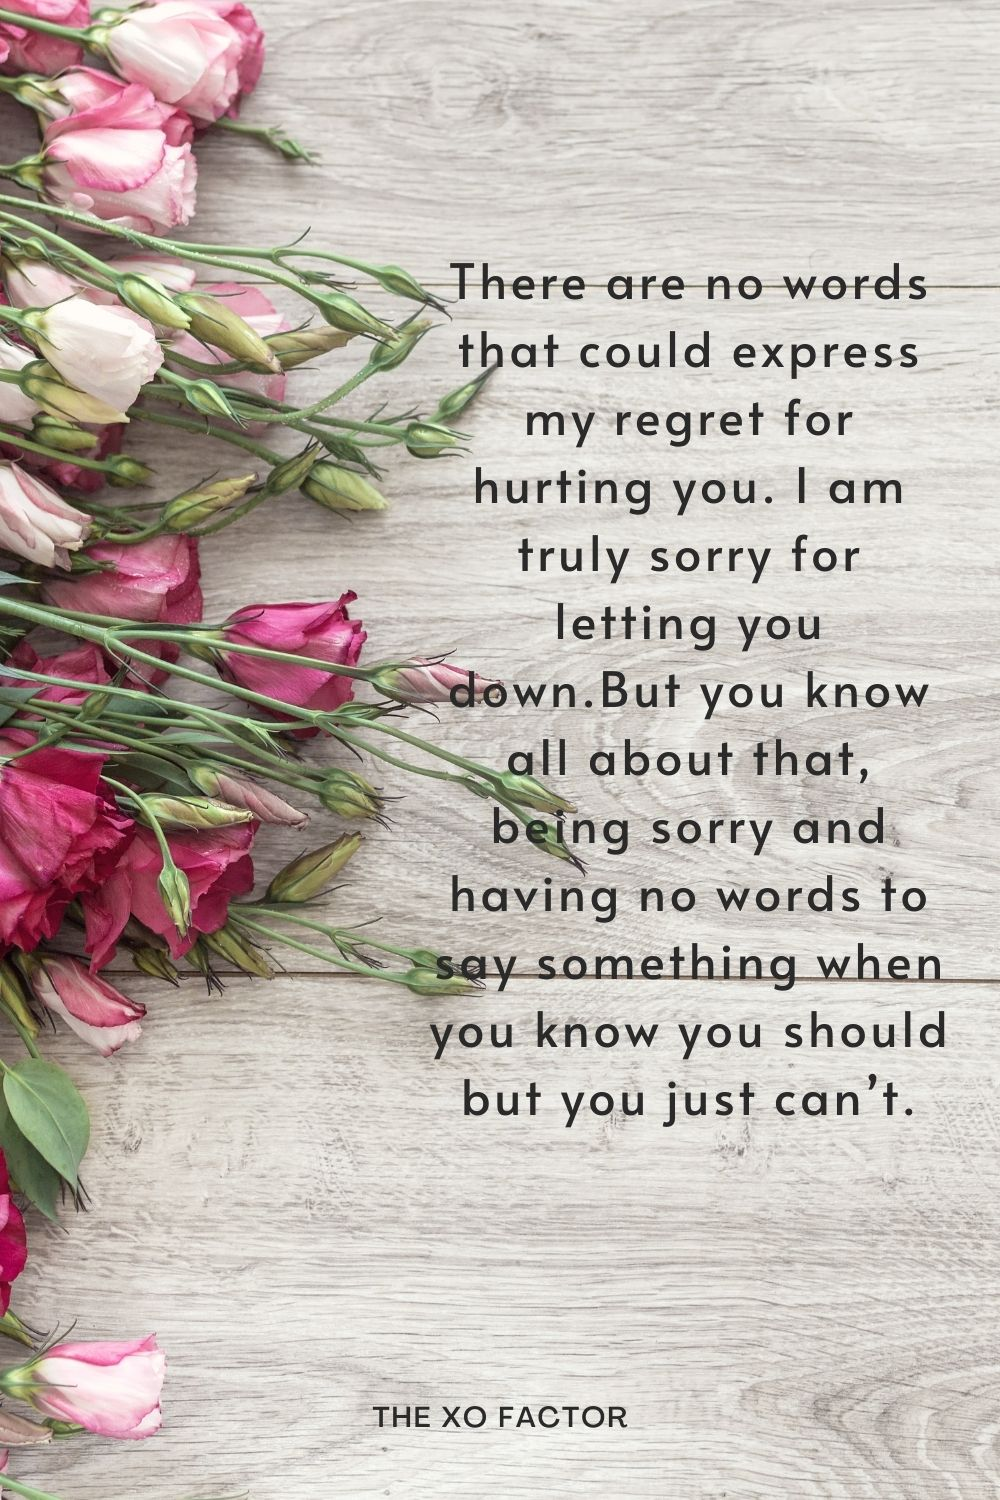 There are no words that could express my regret for hurting you. I am truly sorry for letting you down.But you know all about that, being sorry and having no words to say something when you know you should but you just can't.